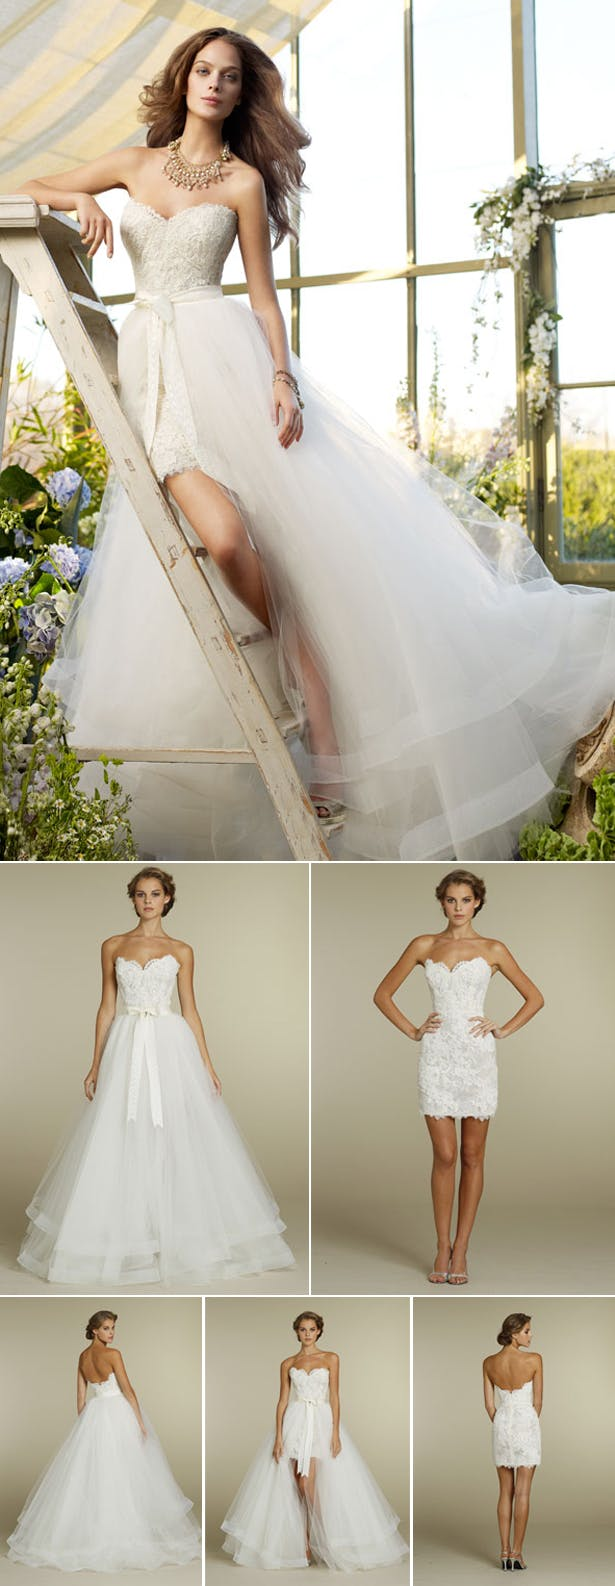 Style TK2210 by Tara Keely, JLM Couture   Confetti.co.uk